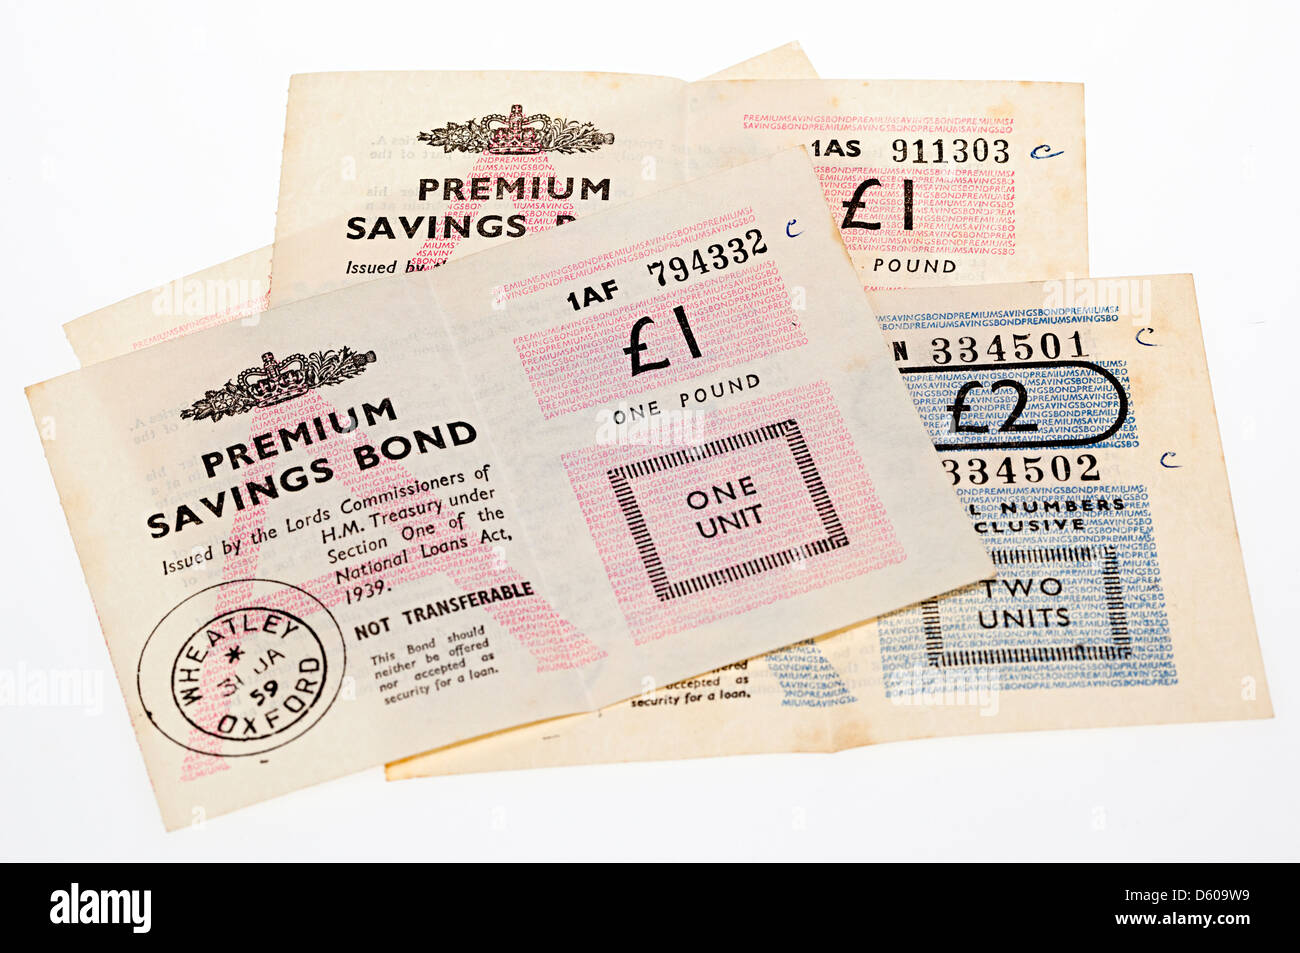 Old style Premium Bond certificates issued in the 1950s, UK Stock Photo